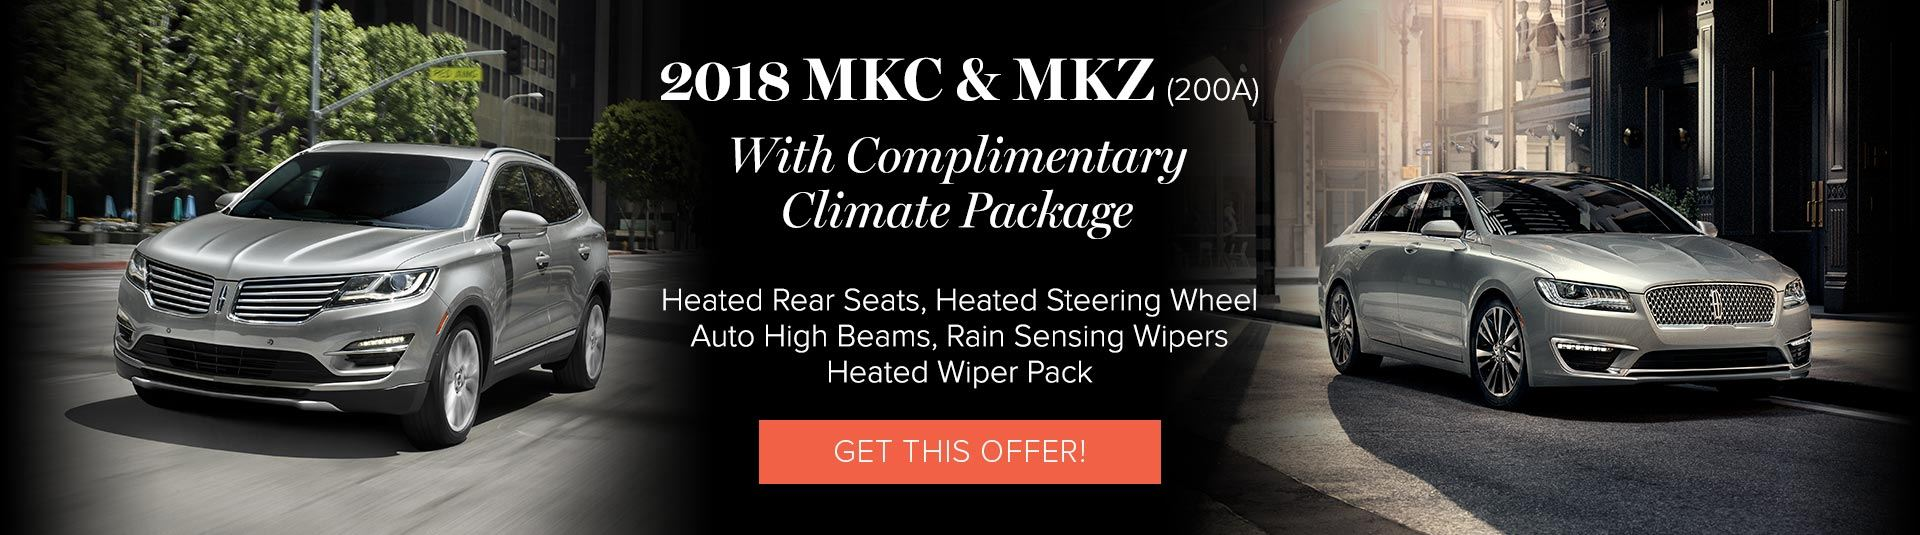 Lincoln MKC and MKZ Offers